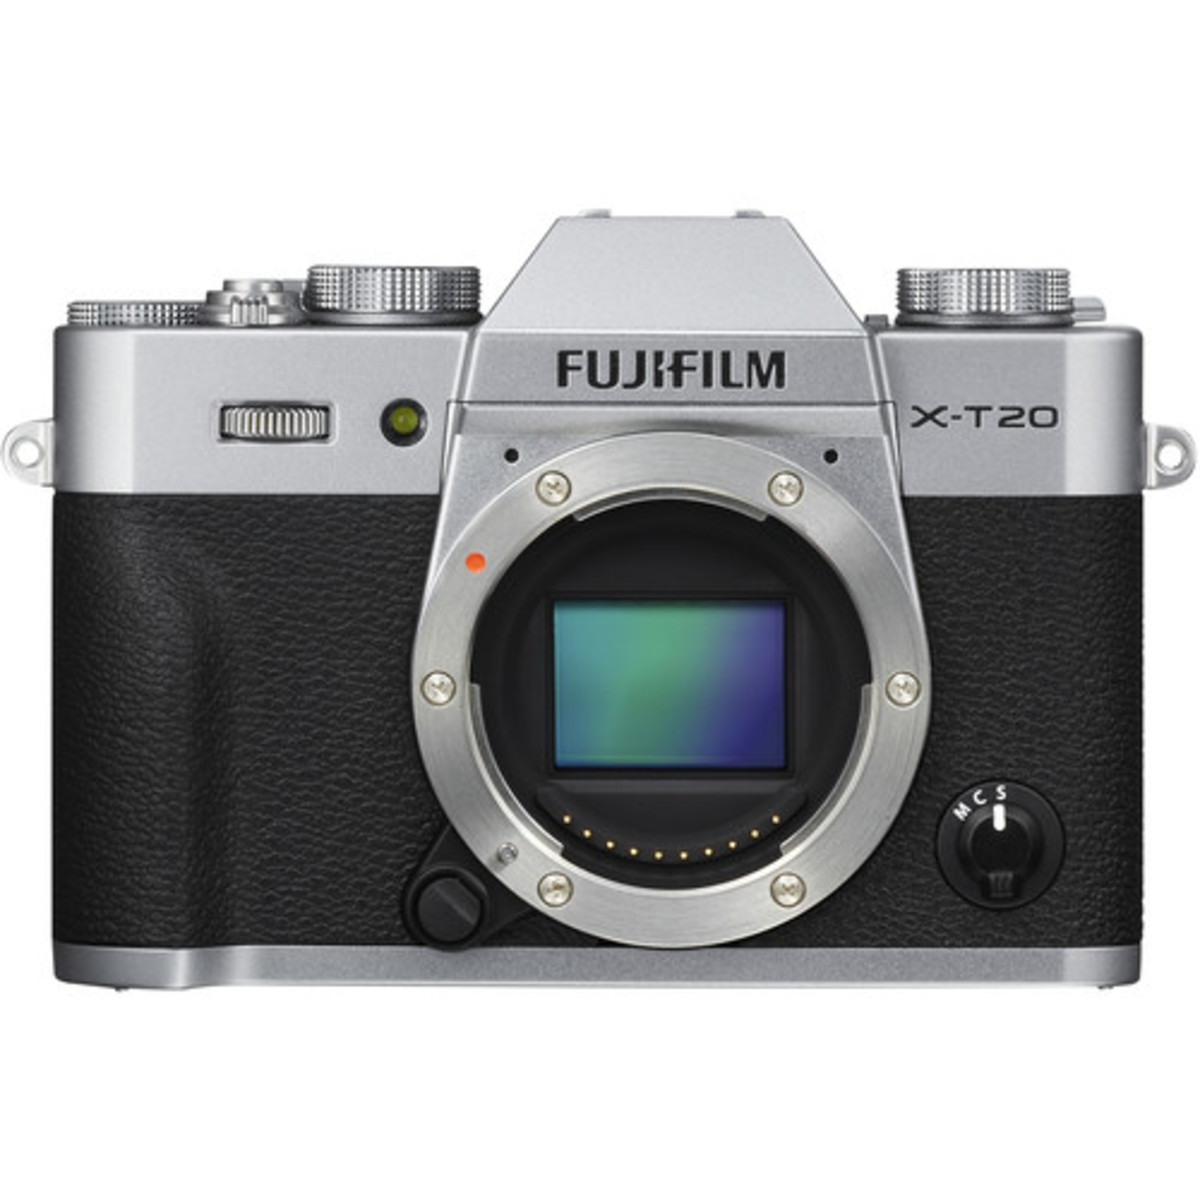 Fujifilm X-T20 Mirrorless Digital Camera - [Body Only, Silver] (Parallel imported)